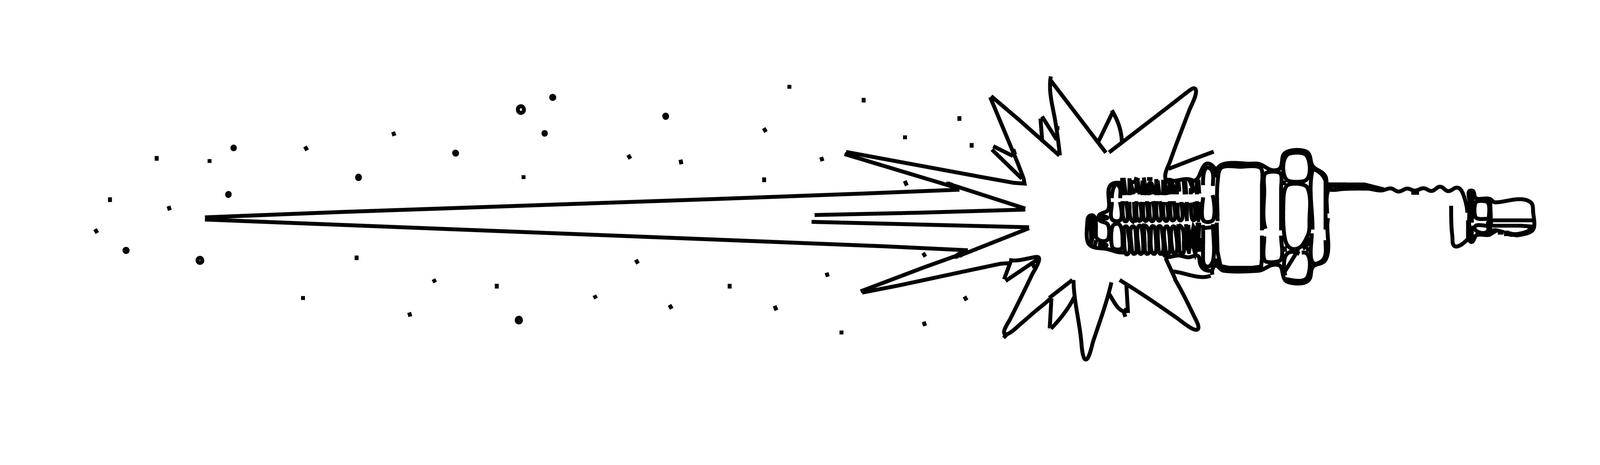 Outline drawing of a firing auto spark plug